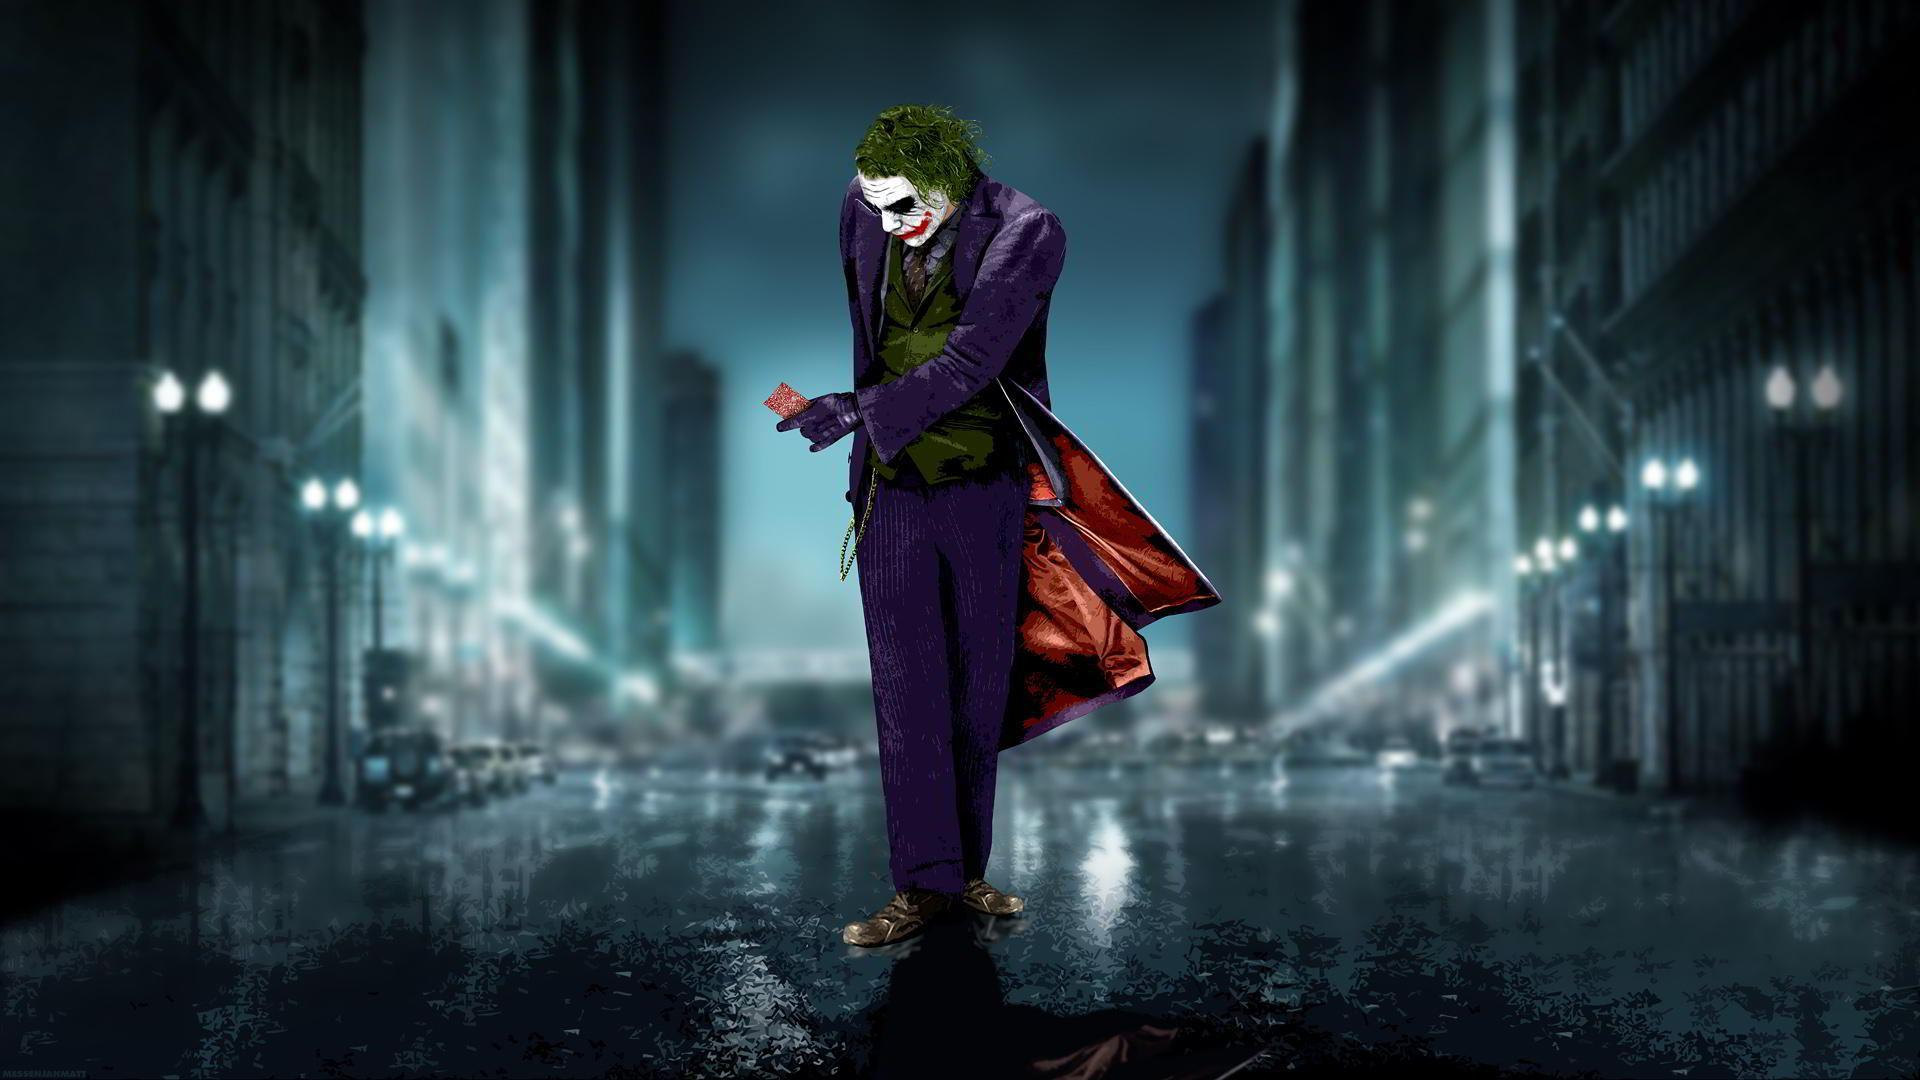 Joker Why So Serious Wallpapers Hd 1080p Wallpaper Cave